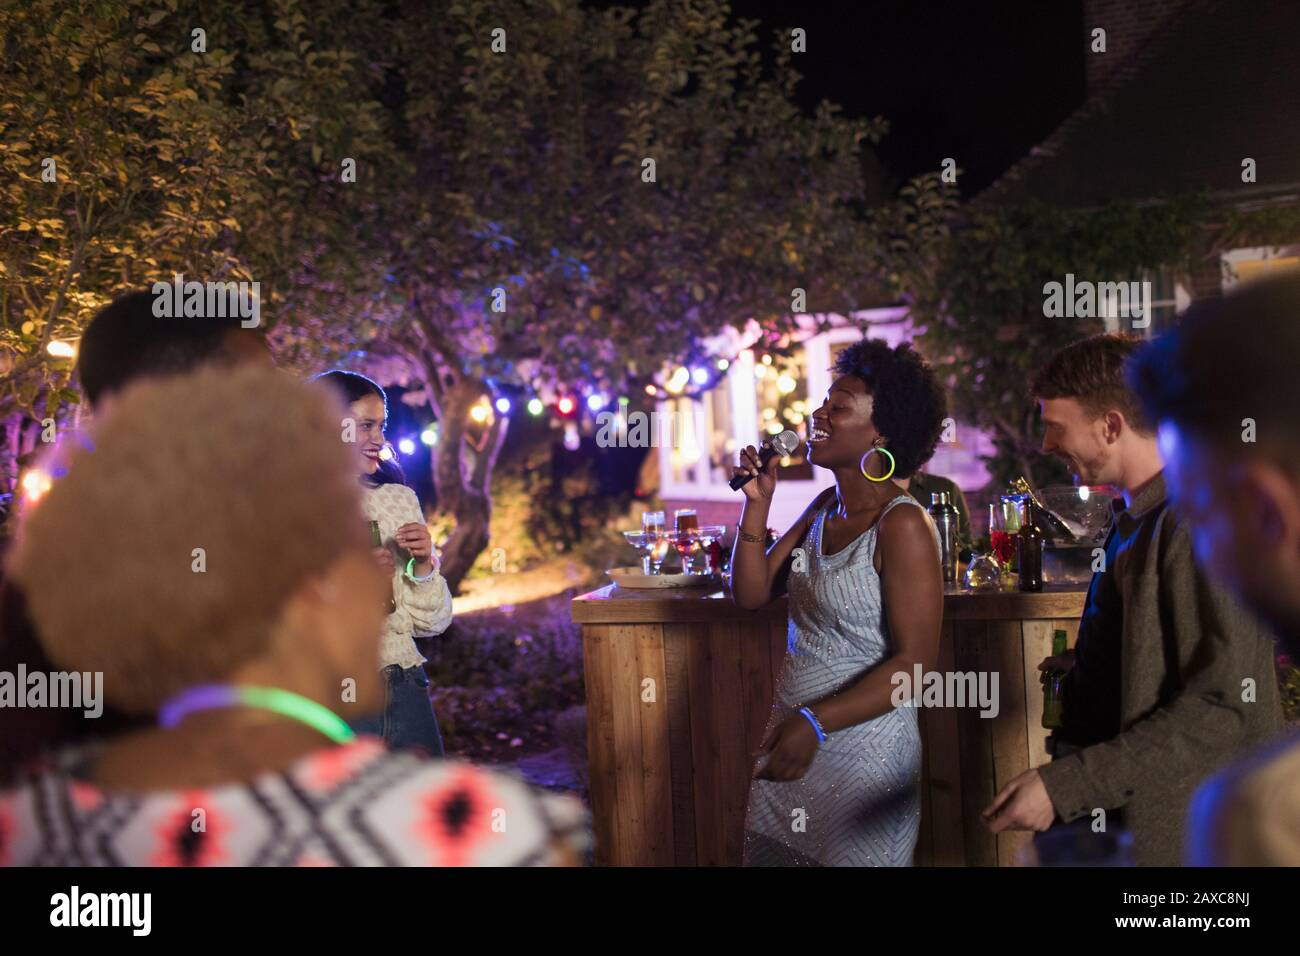 Young woman with microphone singing at garden party Stock Photo